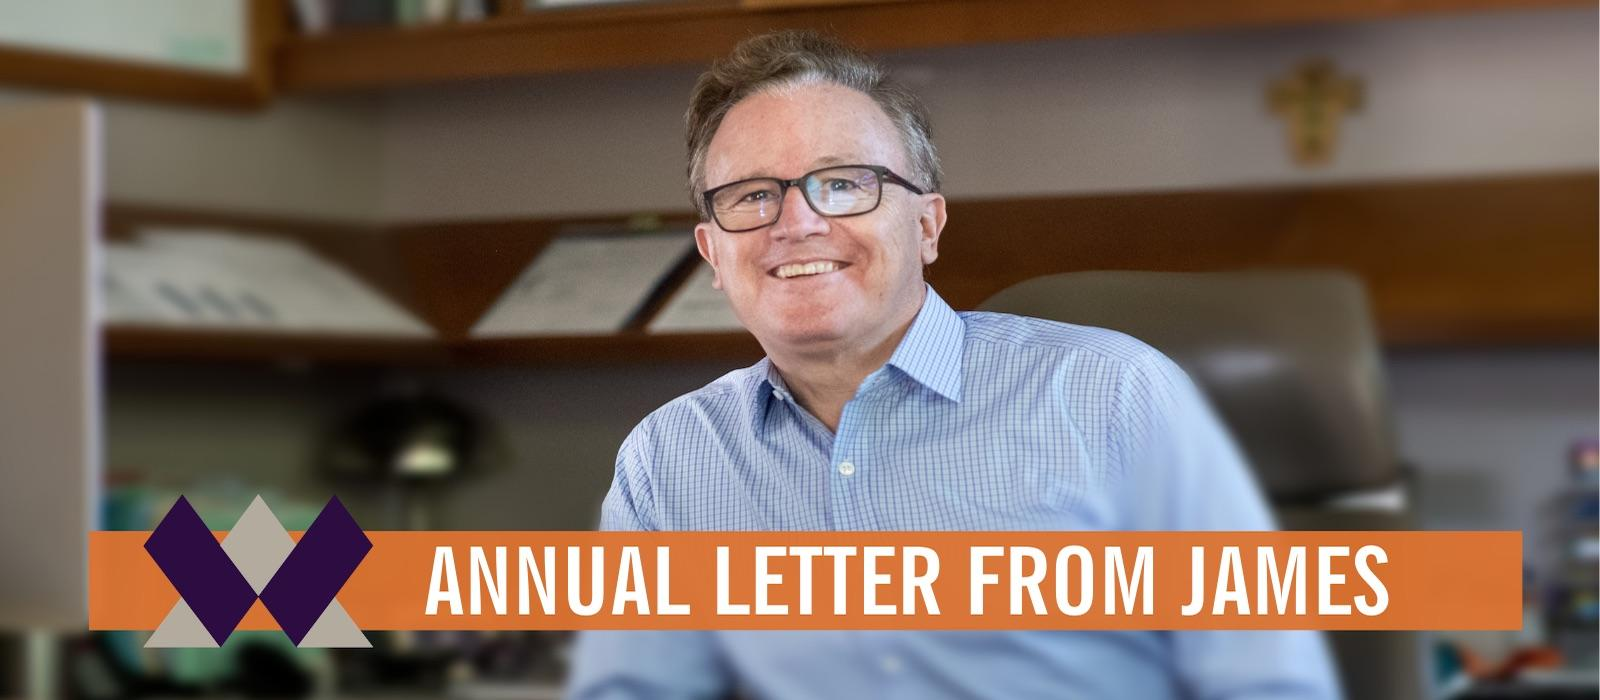 Annual Letter From James Thumbnail